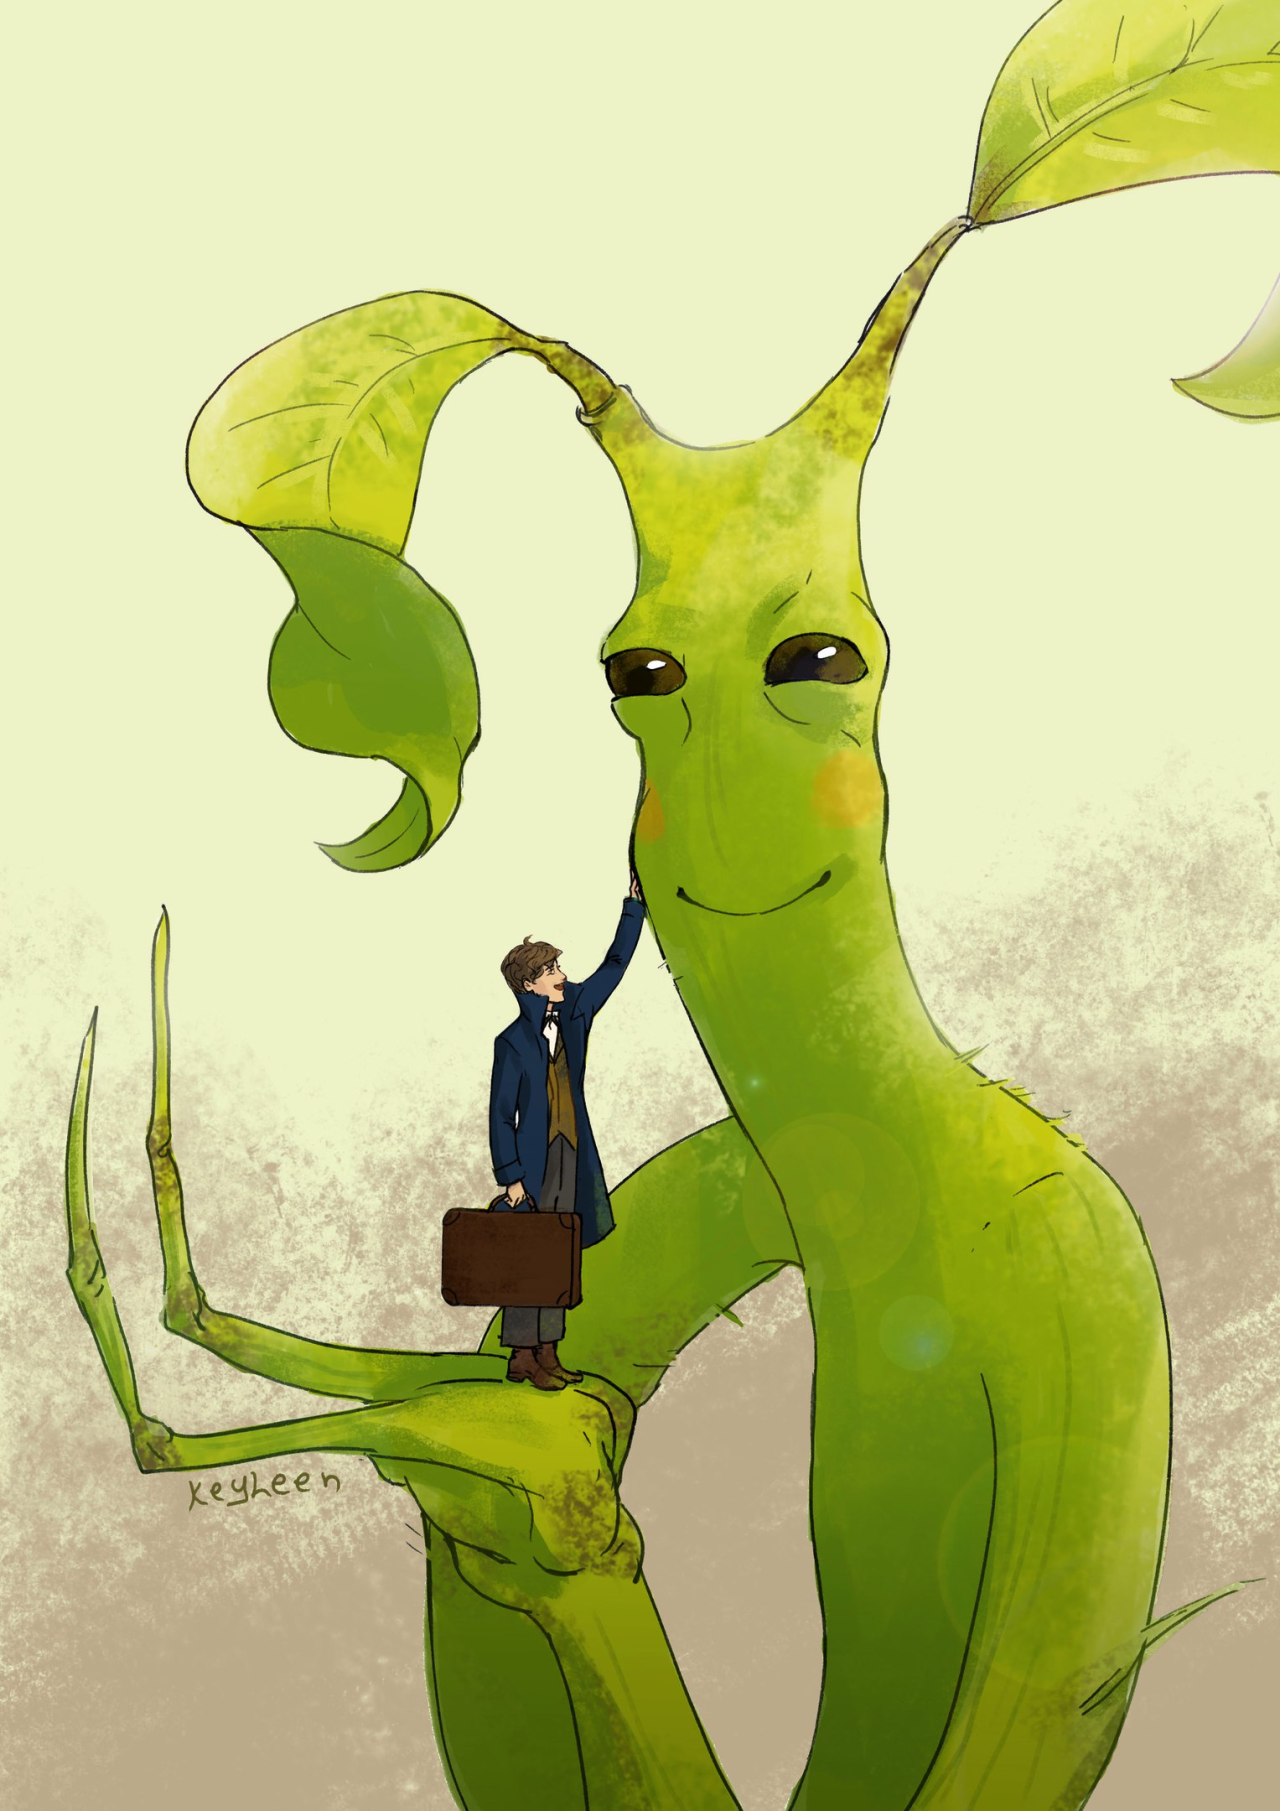 Fantastic Beasts Newt Scamander Bowtruckle Fantastic Beasts Creatures Fantastic Beasts Harry Potter Fantastic Beasts They have long twig fingers or arms, used for digging out wood. fantastic beasts newt scamander